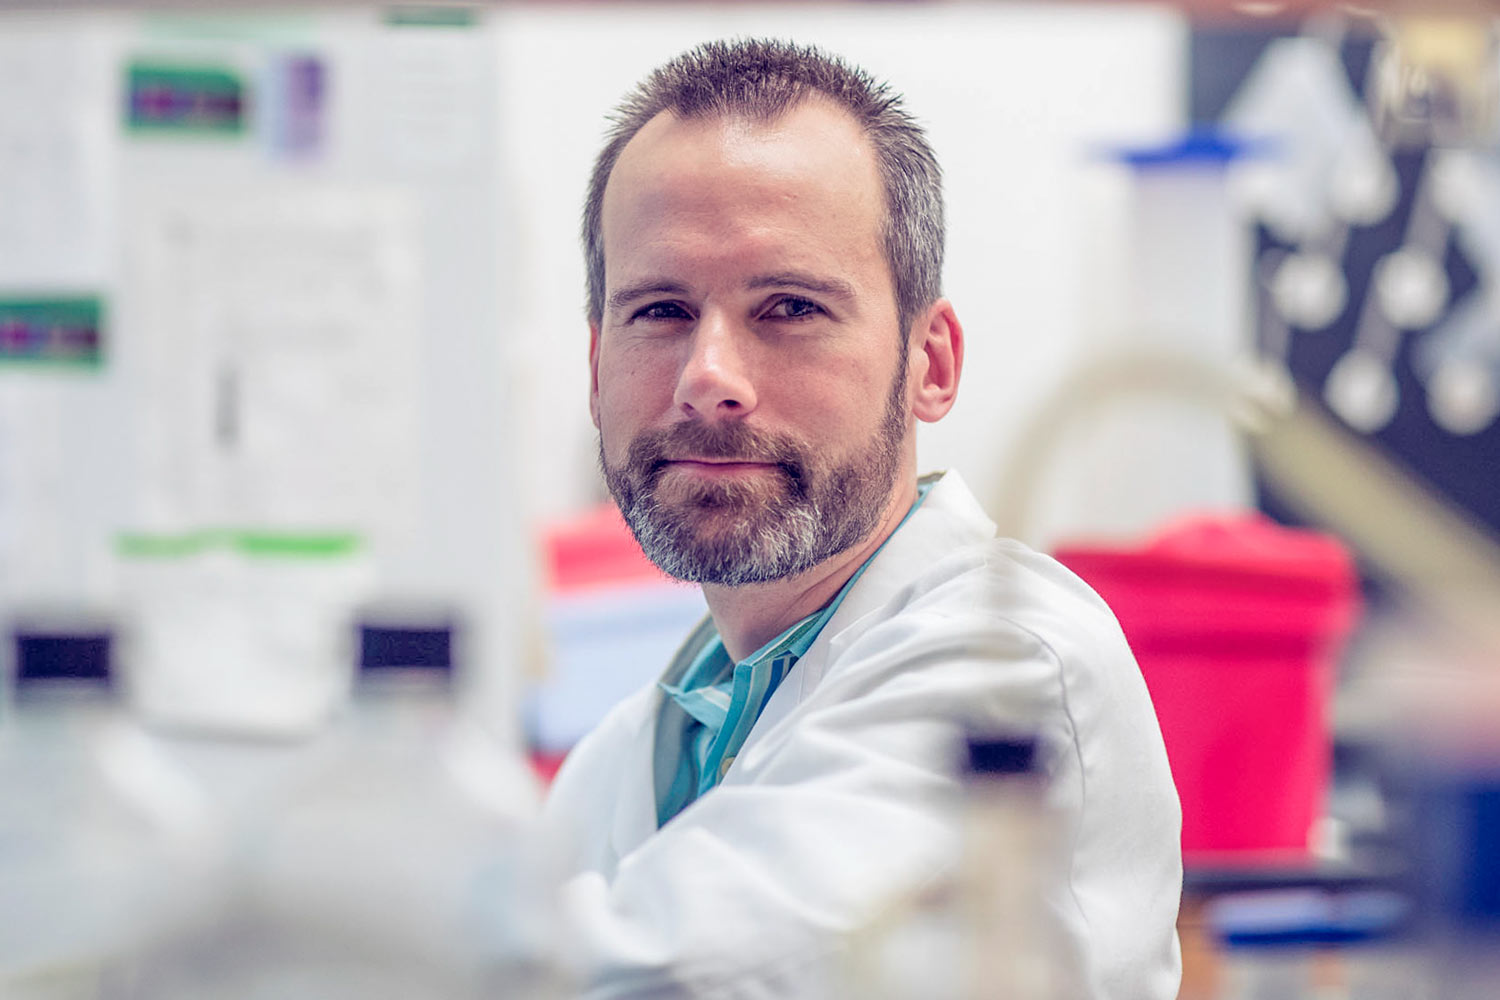 Biomedical engineering professor Kevin Janes and colleagues are looking for an end-around path to solving the triple-negative breast cancer puzzle.